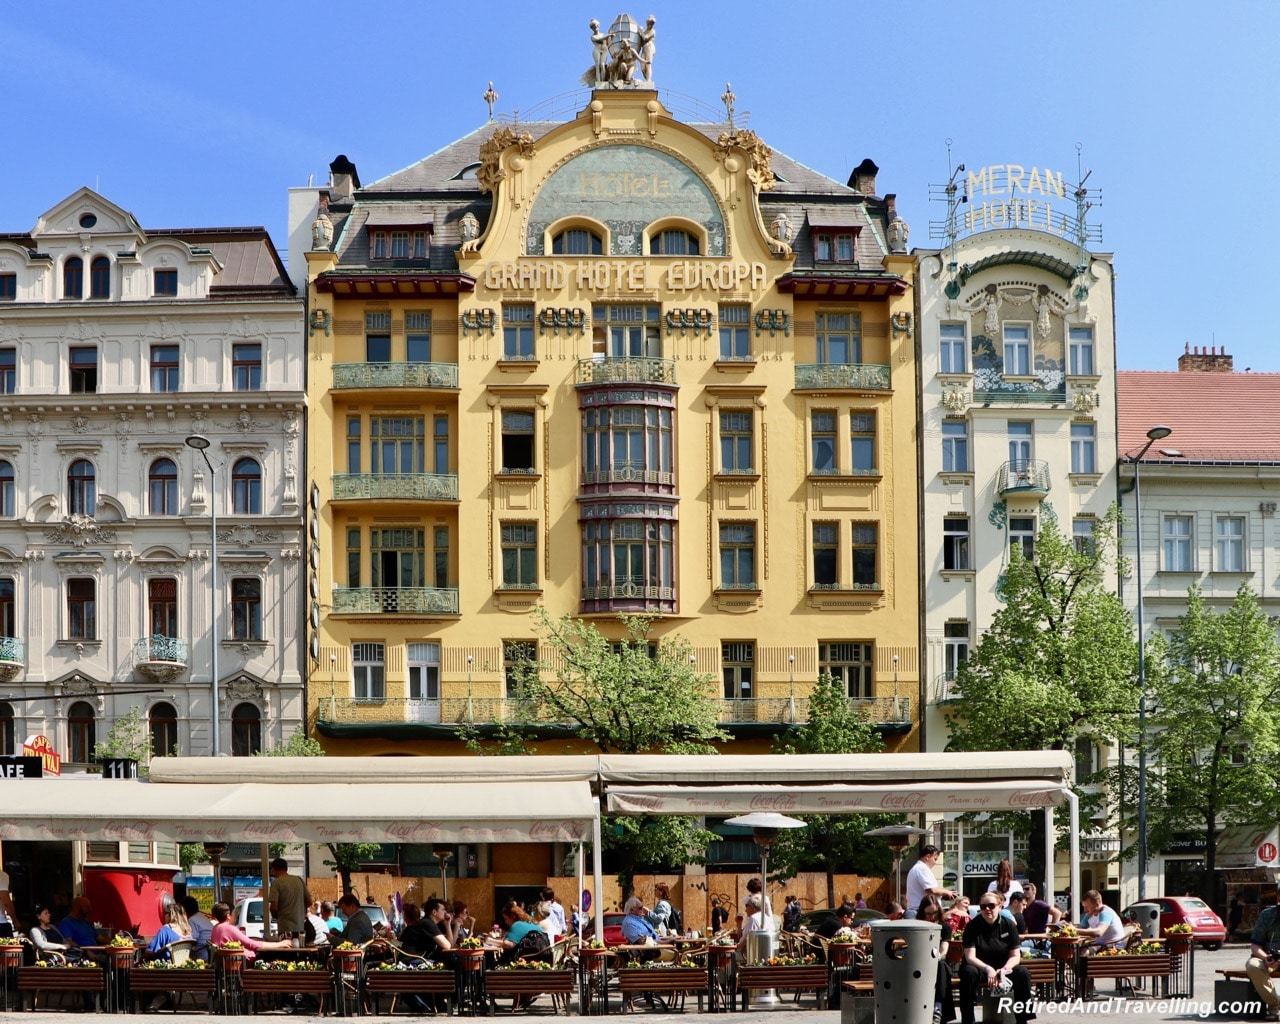 Europa Hotel Building Facades - Buildings And Architecture Of Prague.jpg